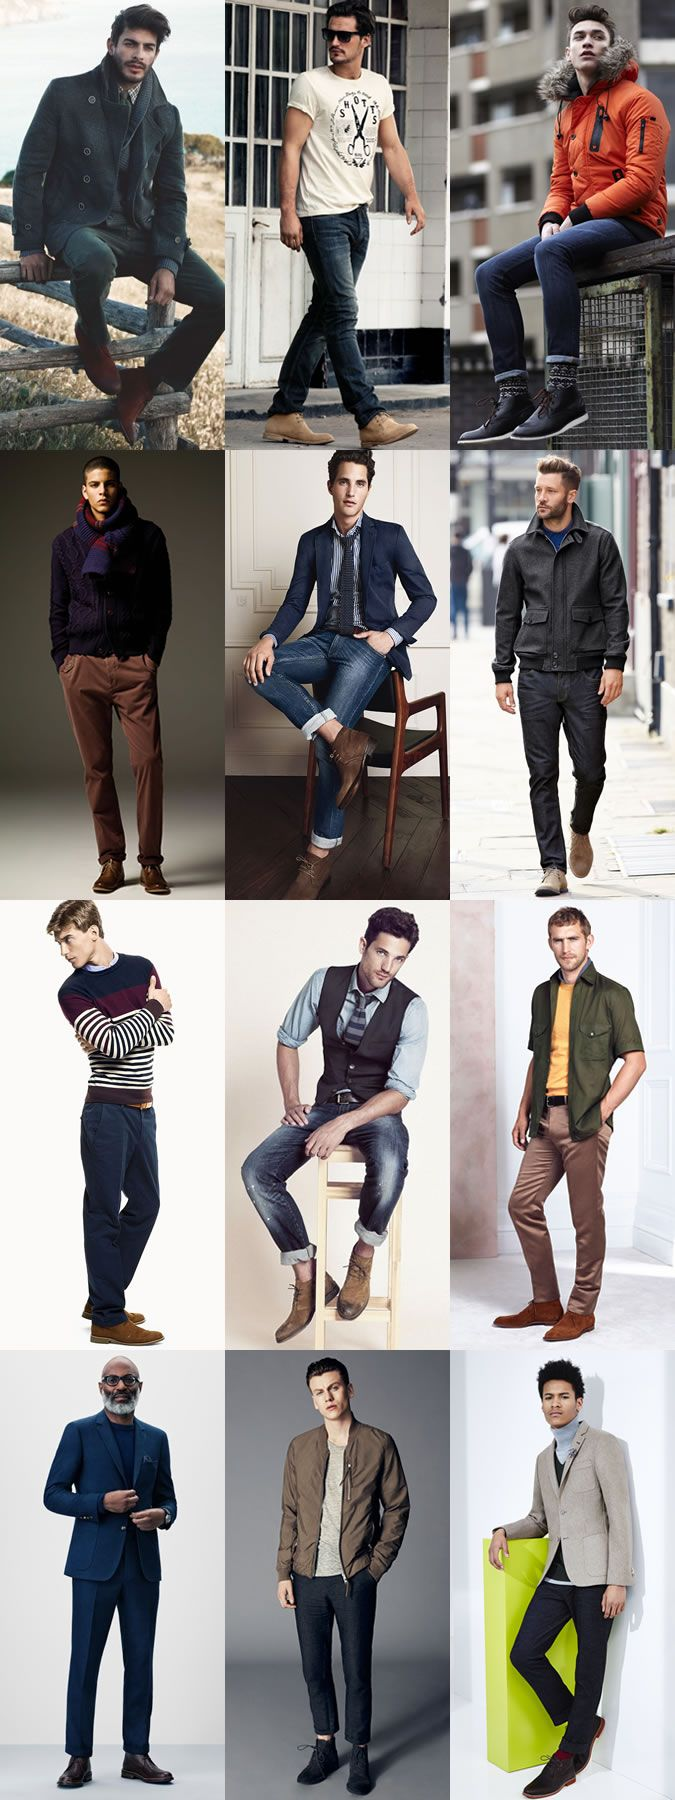 Men's Chukka Boots - Transitional Outfit Inspiration Lookbook